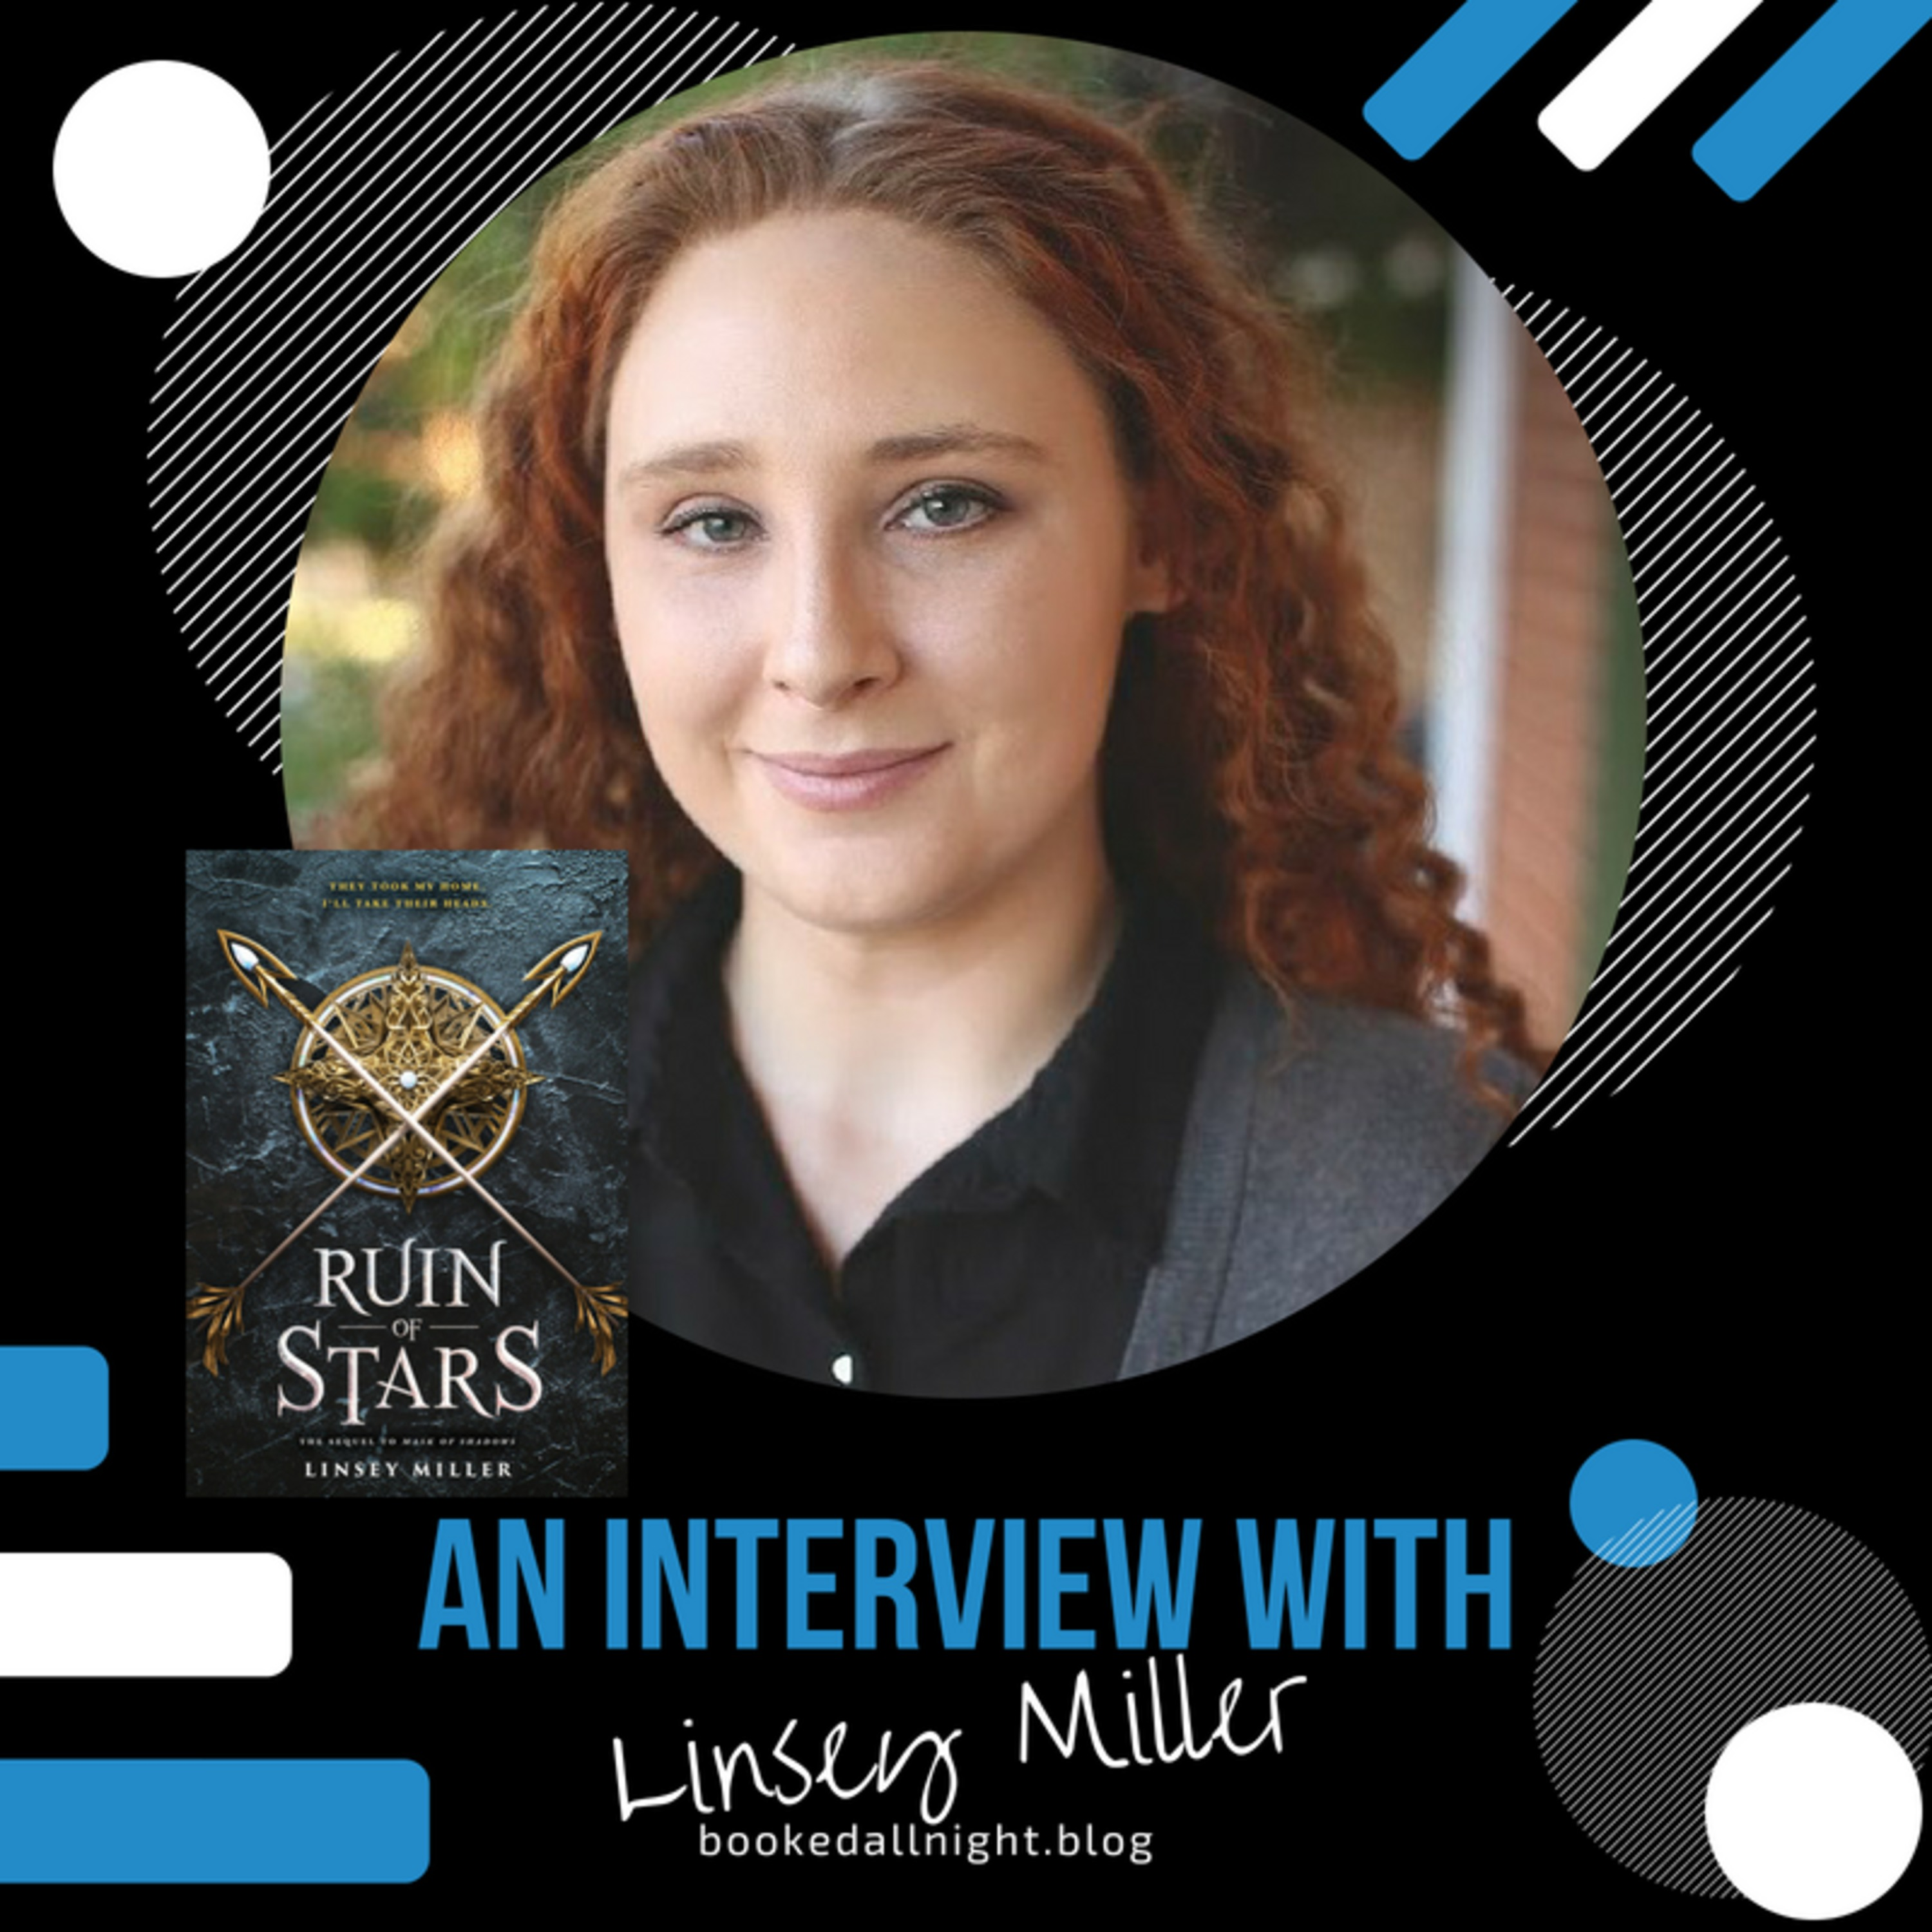 An Interview with Linsey Miller